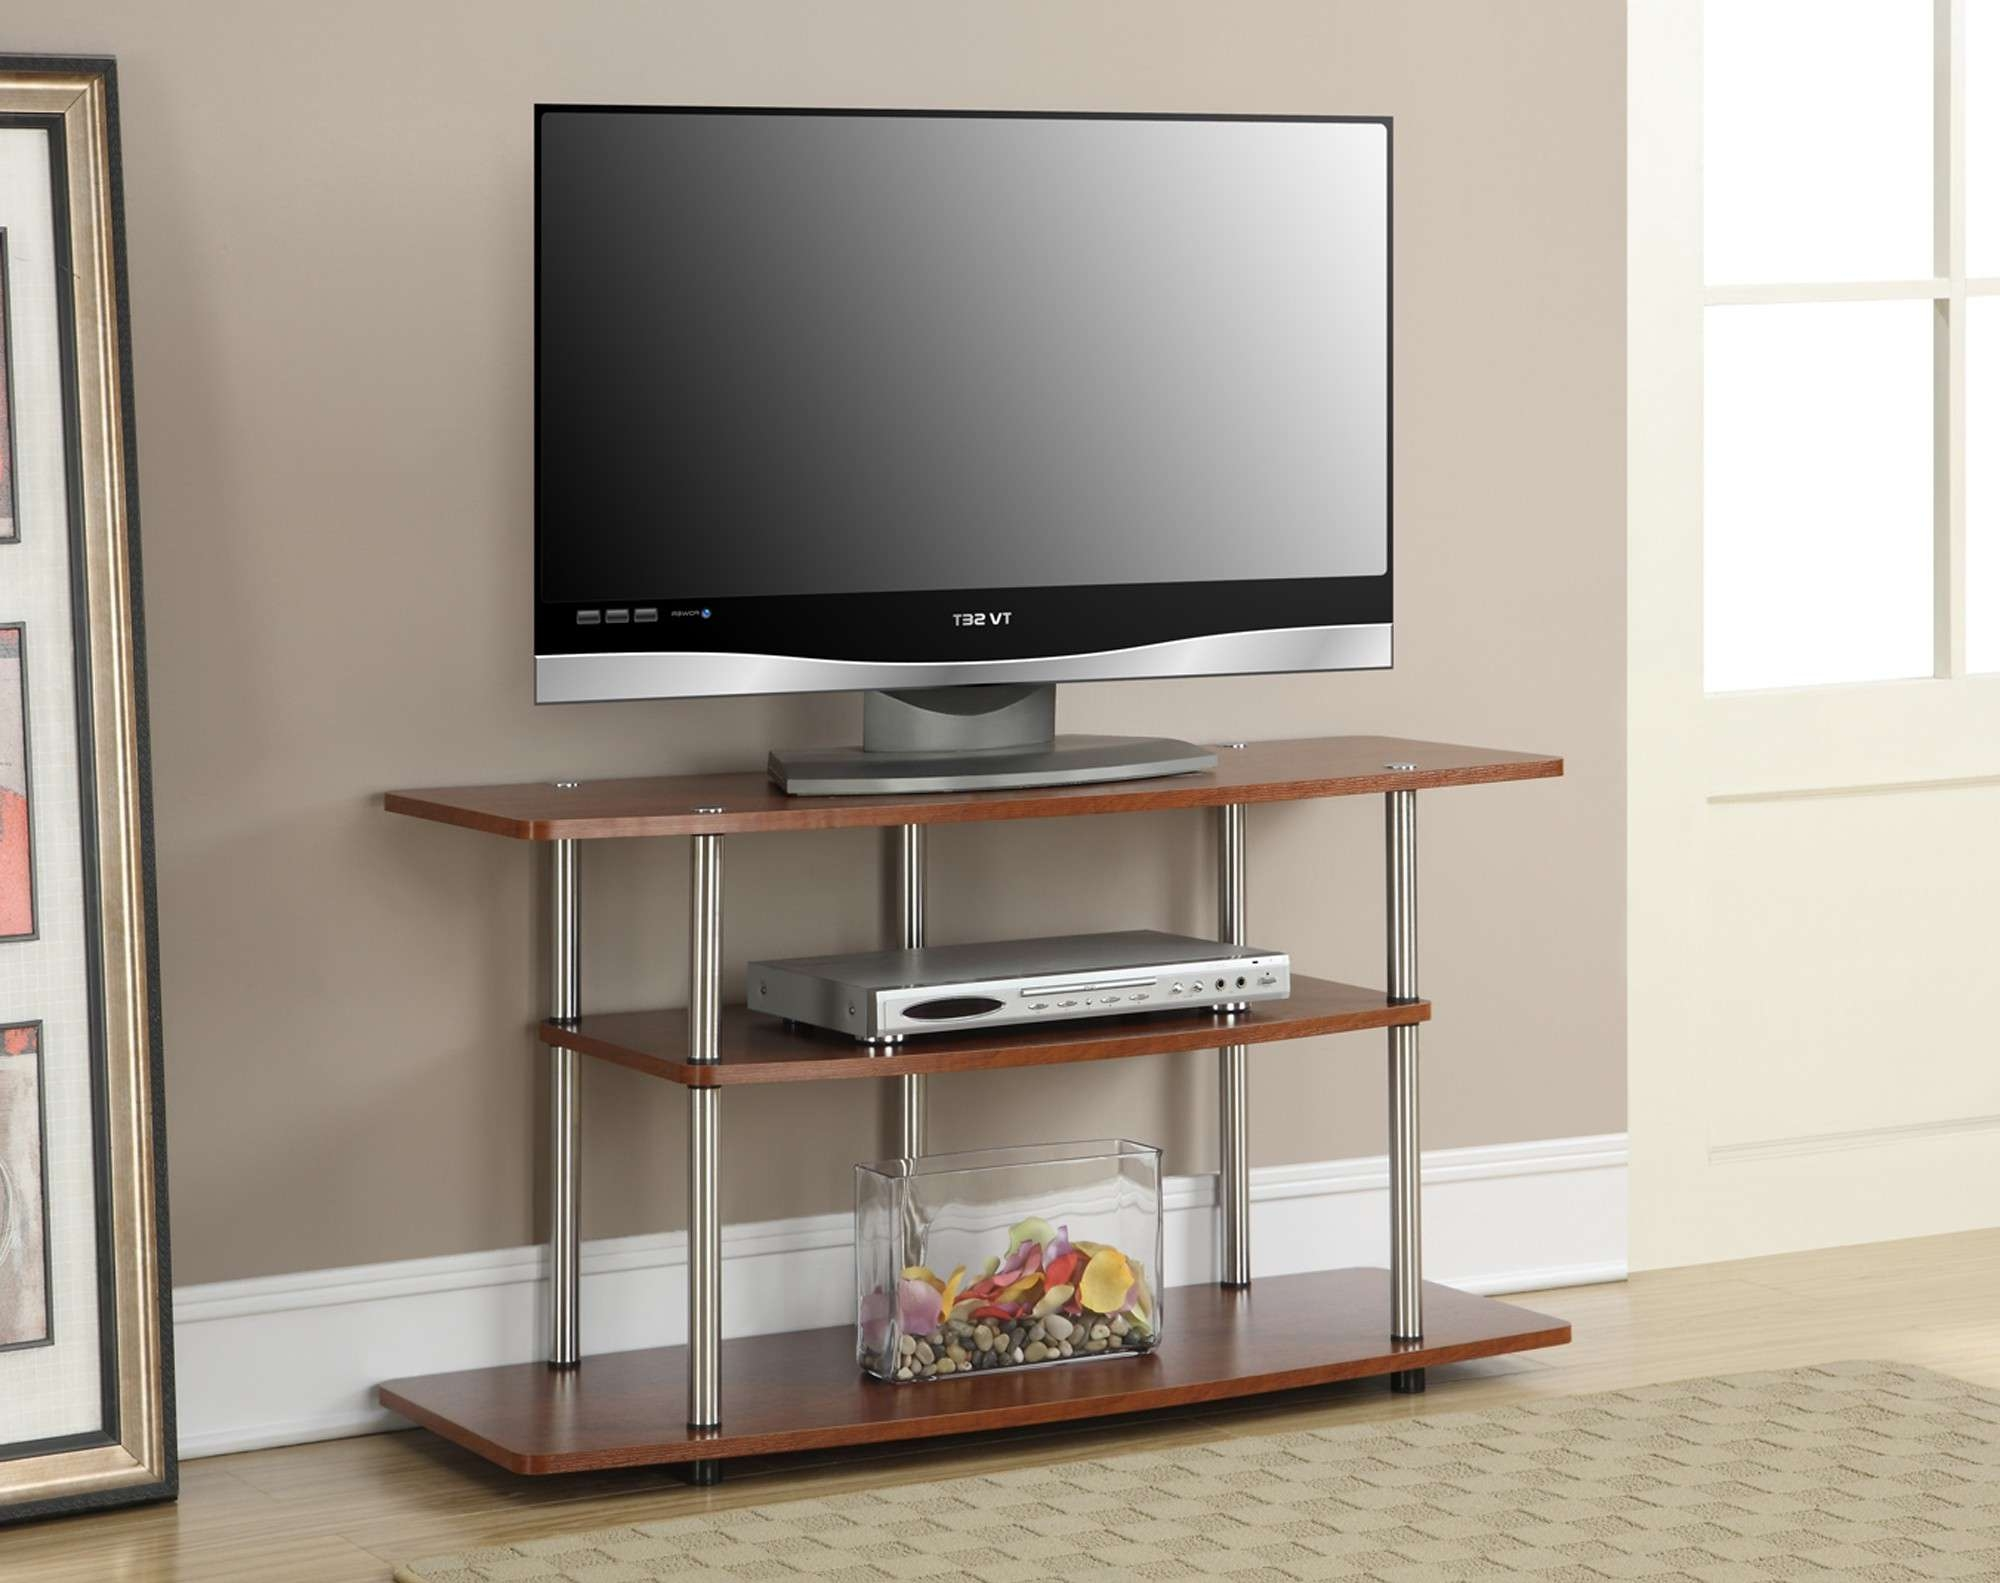 Furniture Fascinating Tv Stands For Flat Screens Bring Modern With With Modern Tv Stands For Flat Screens (View 9 of 15)